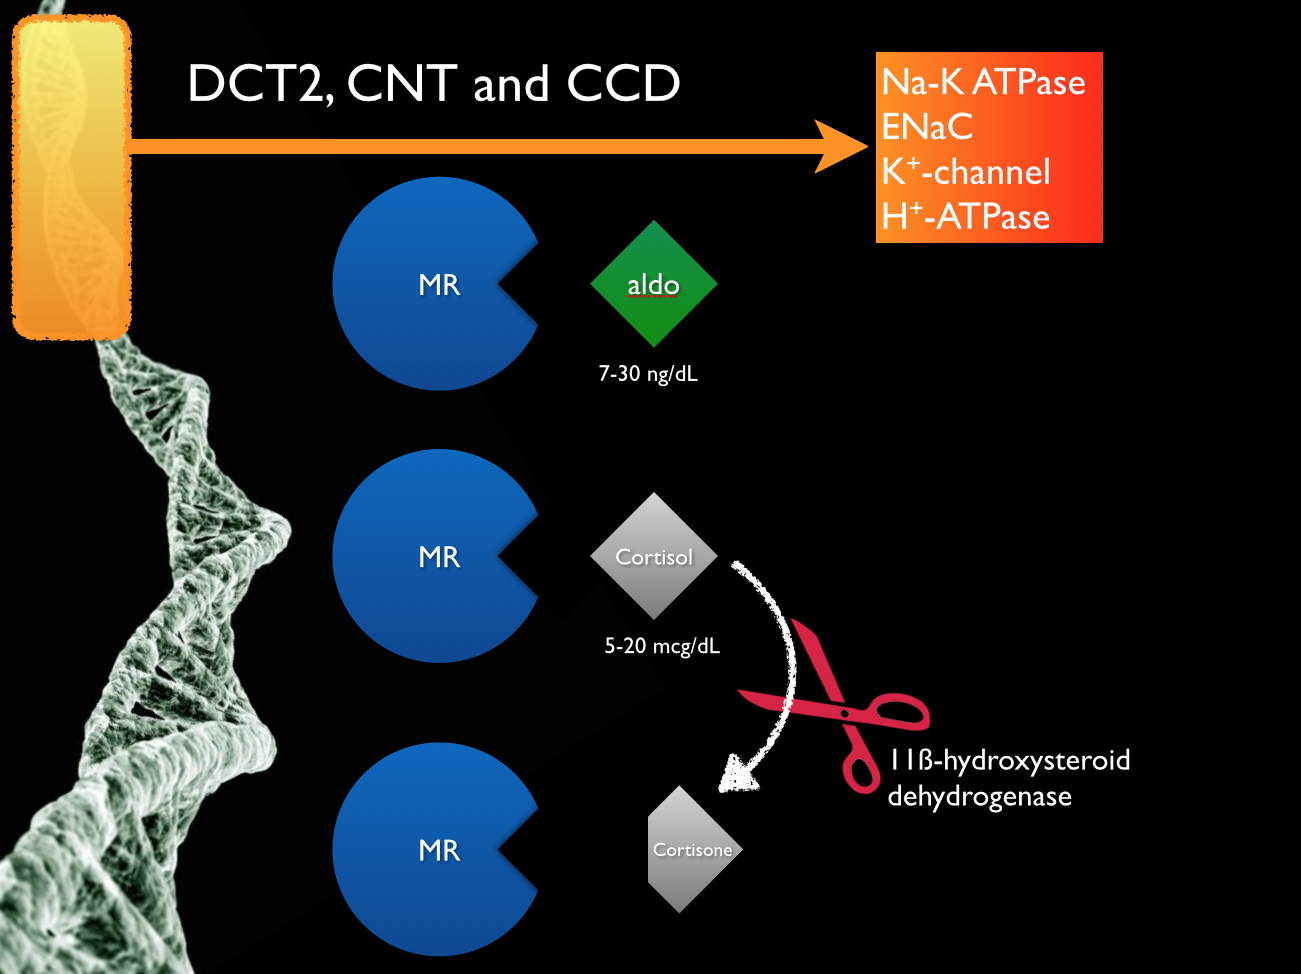 The cortisol can activate the same mineralocorticoid receptor tissue as aldosterone. In DCT1 (and much of the body) cortisol which circulates at 1,000 times the concentration of aldosterone swamps the MR receptor and makes it essentially unresponsive to changes in the aldosterone concentration. 11beta-hydroxysteroid dehydrogenase inactivates cortisol. This makes the tissue sensitive to changes in aldosterone levels. From the Potassium and Metabolic Alkalosis Lecture found  here  .